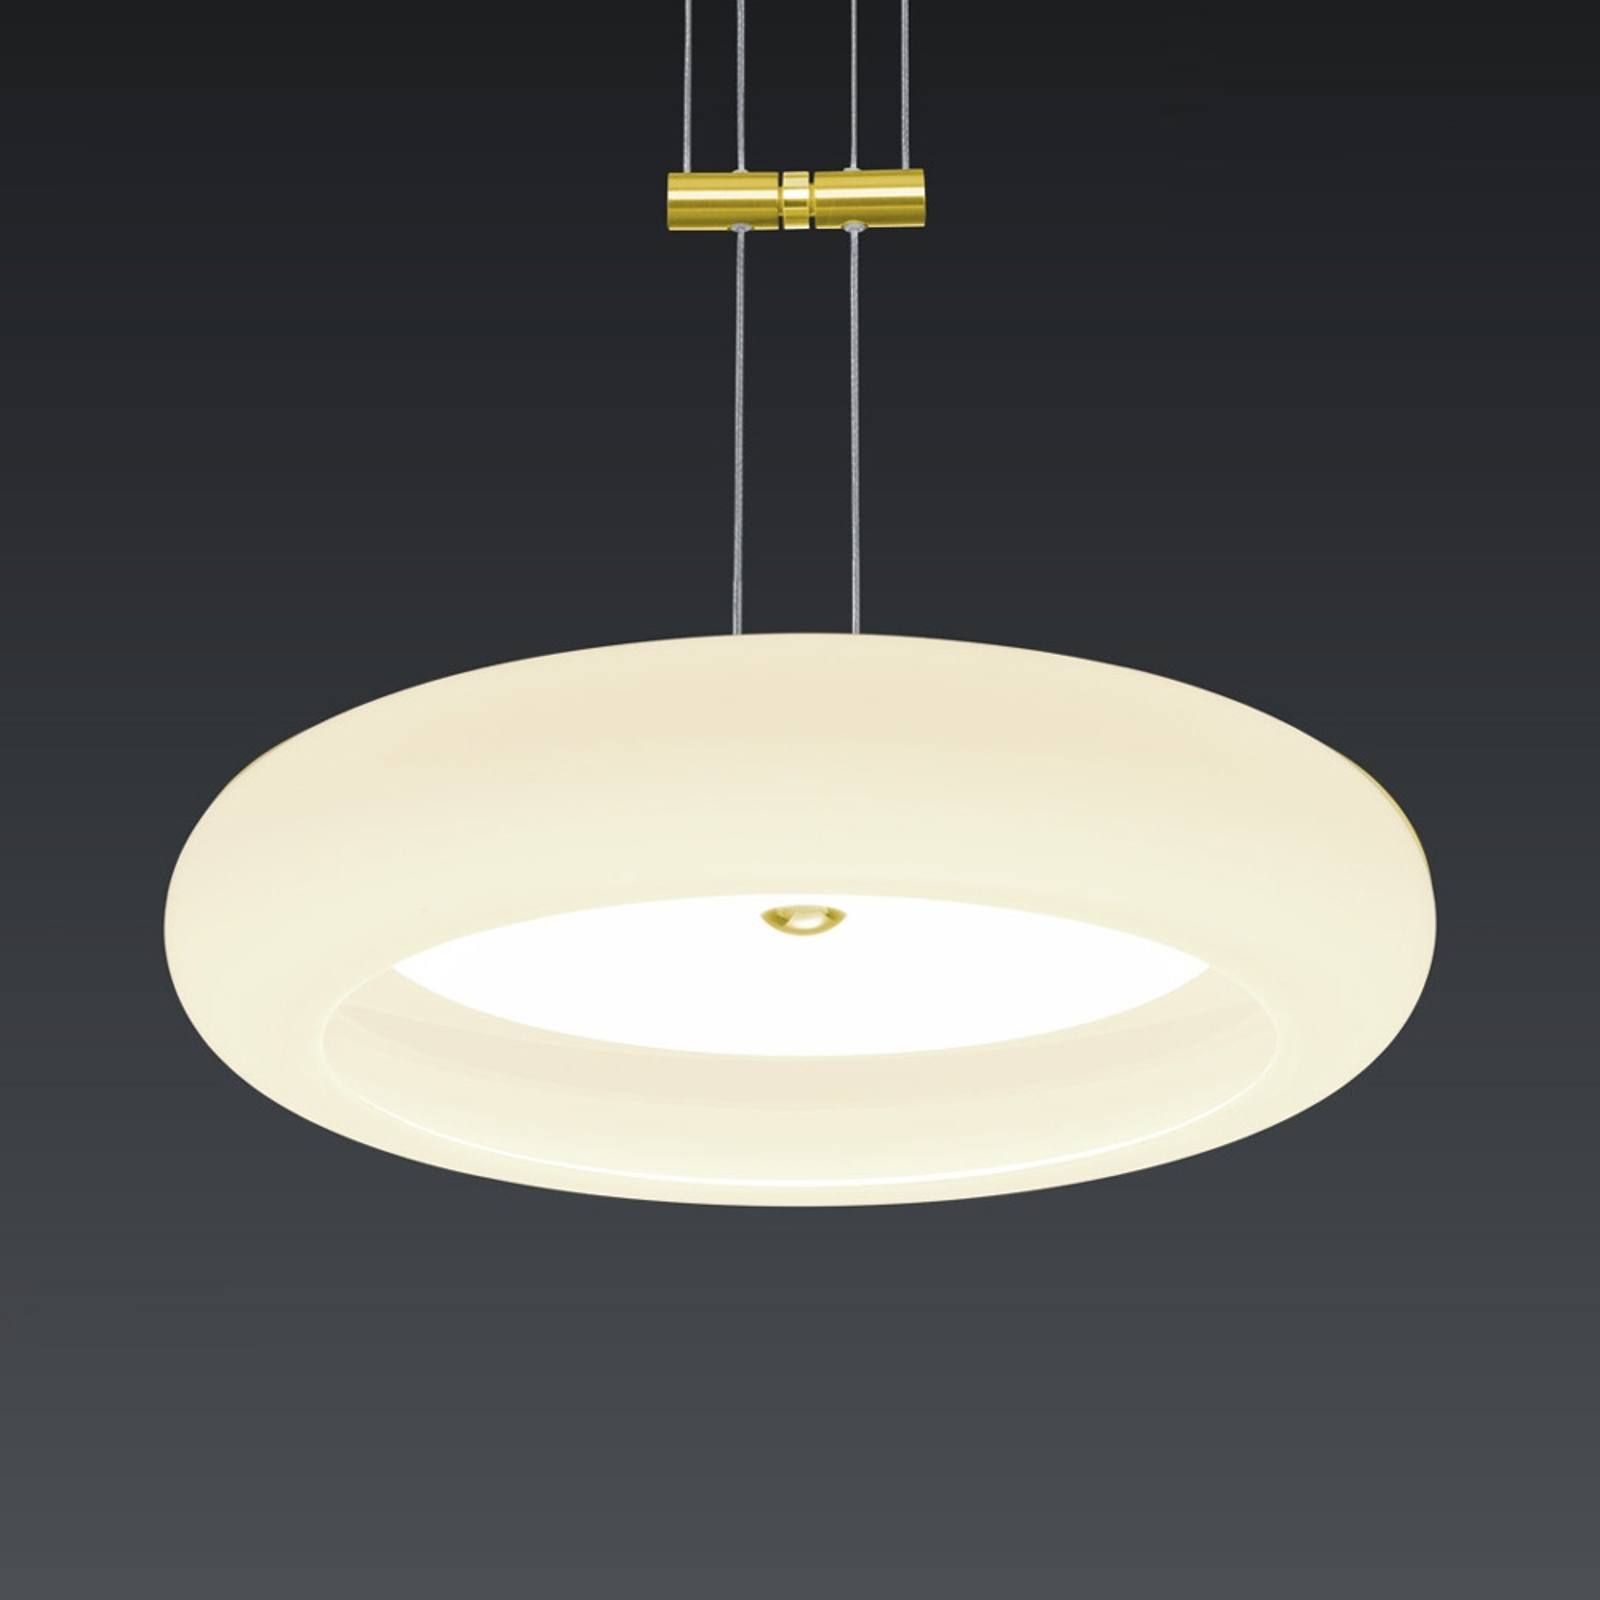 BANKAMP Centa hanglamp 1-lamp 34 cm messing